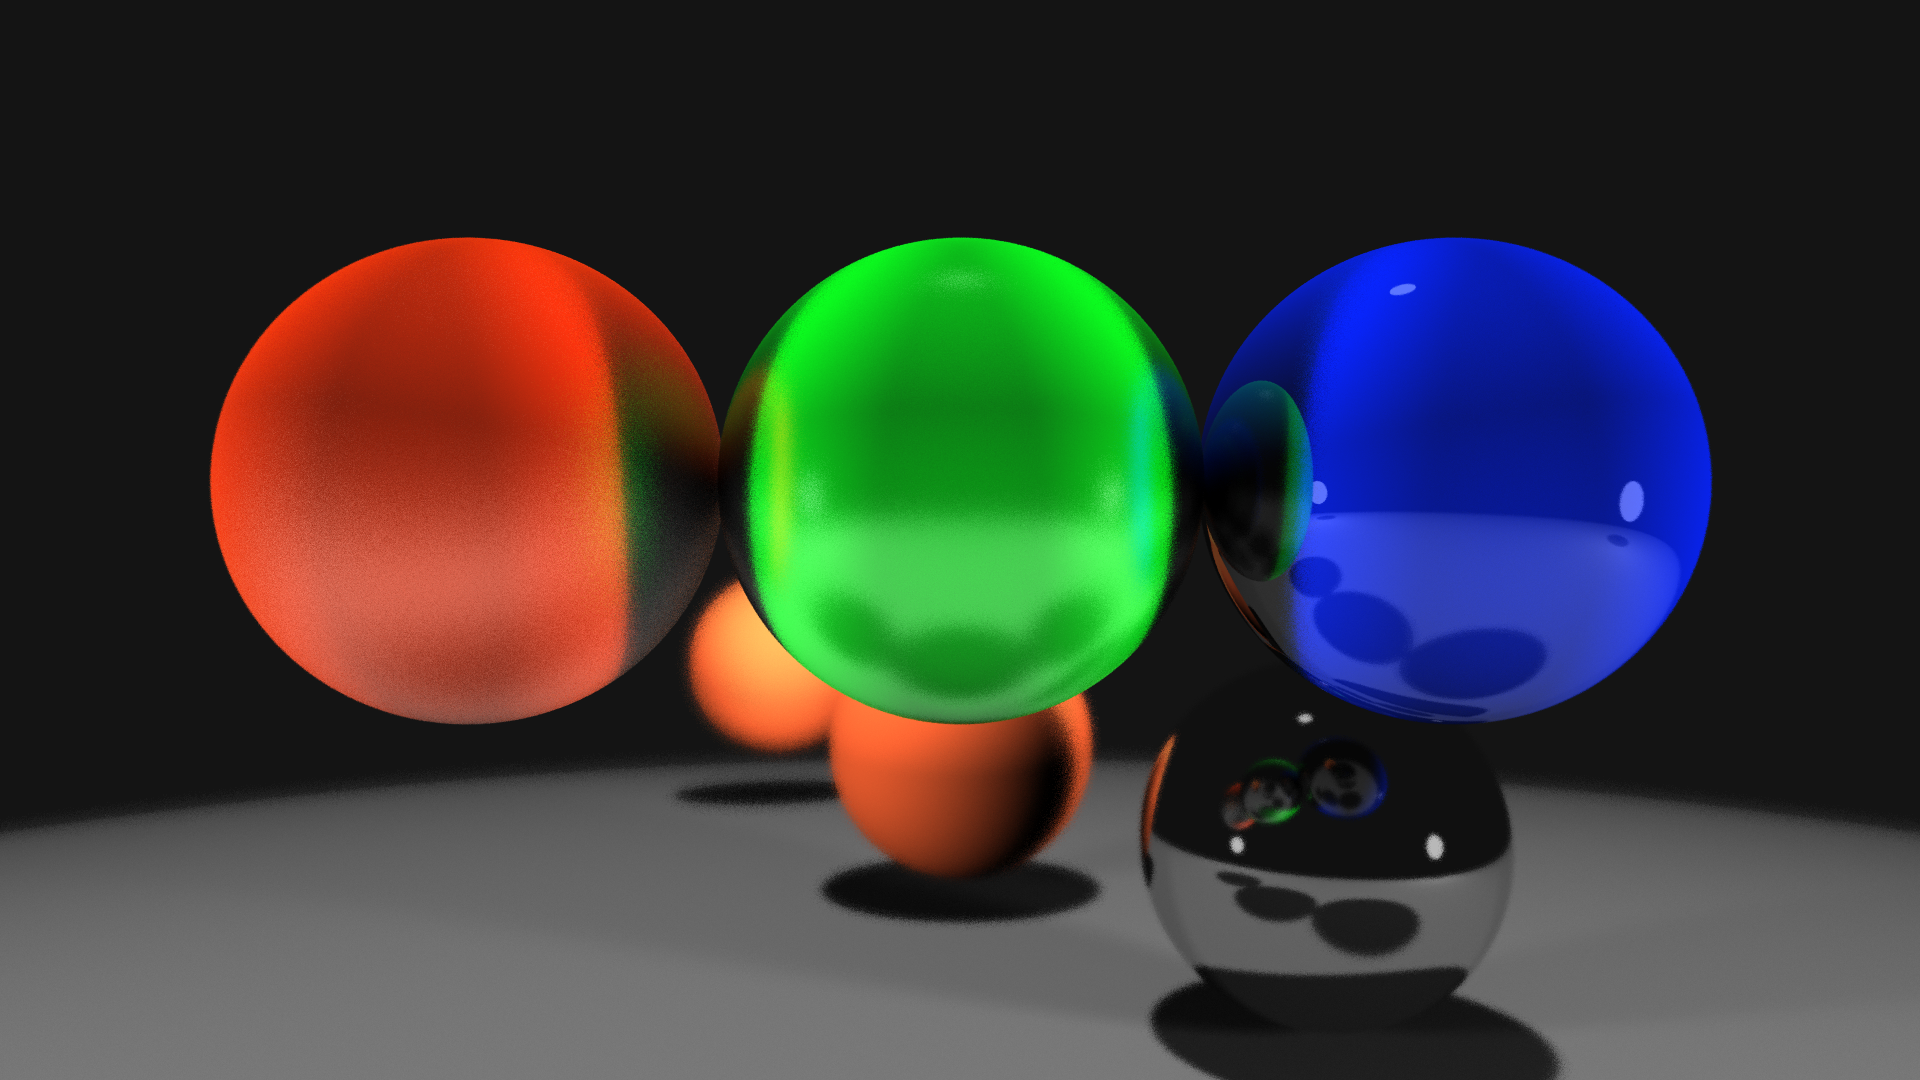 Raytraced result showing three spheres with focal depth